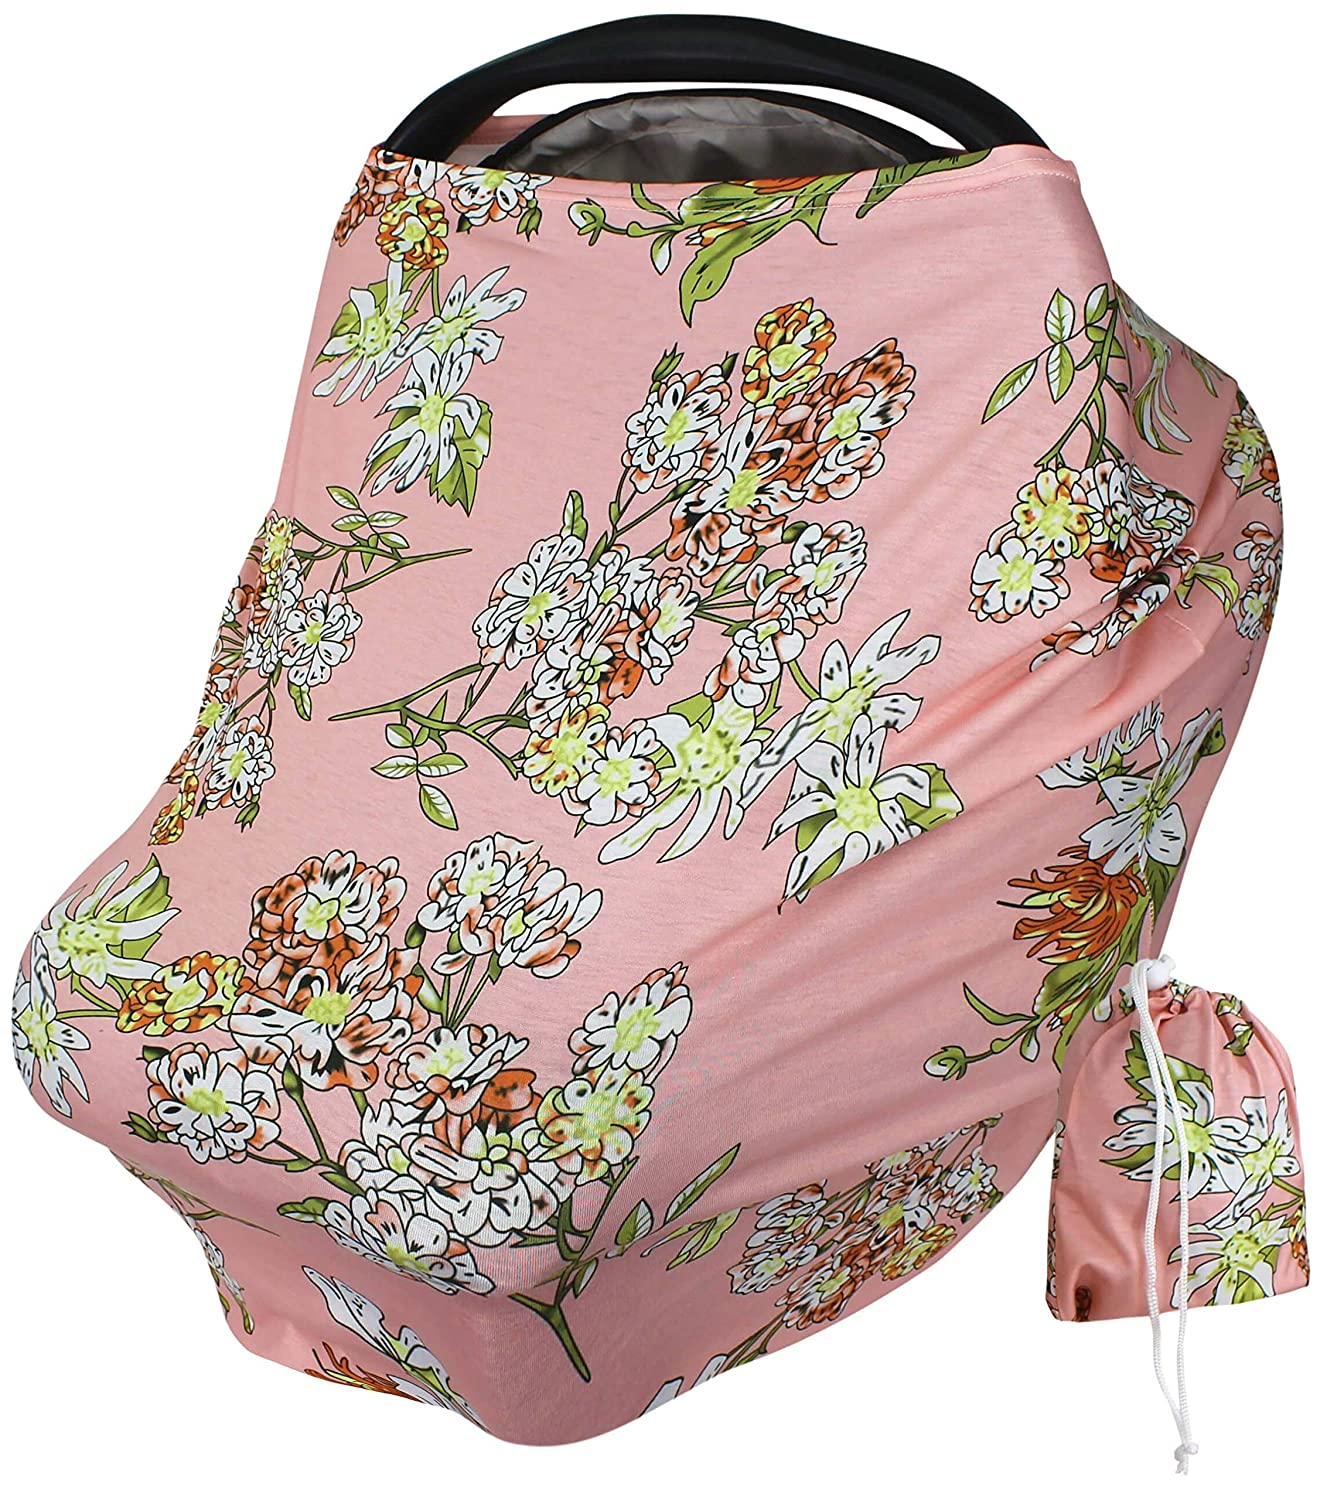 Baby Car Seat Cover Canopy - Coral Geranium Floral Print